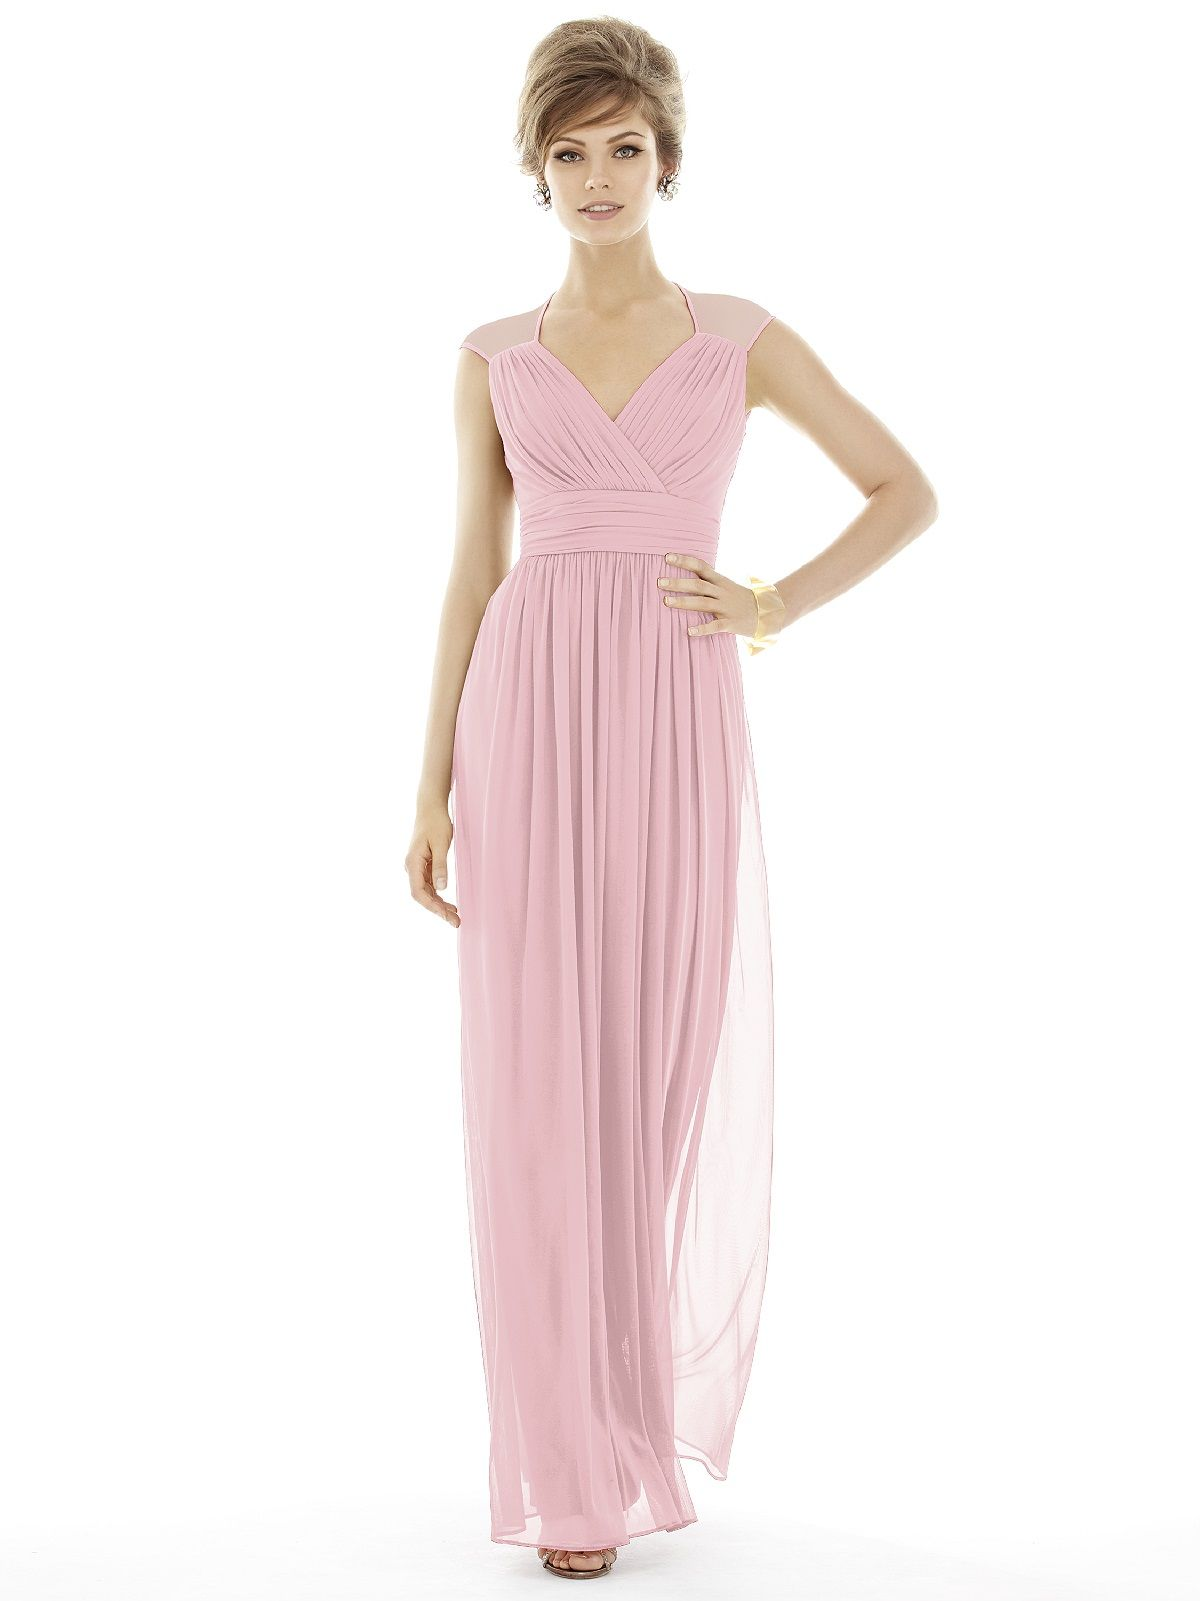 Alfred sung d693 sample sale bridesmaid dress in blush in chiffon shop alfred sung final sale sample sale in chiffon knit at weddington way find the perfect made to order bridesmaid dresses for your bridal party in your ombrellifo Gallery